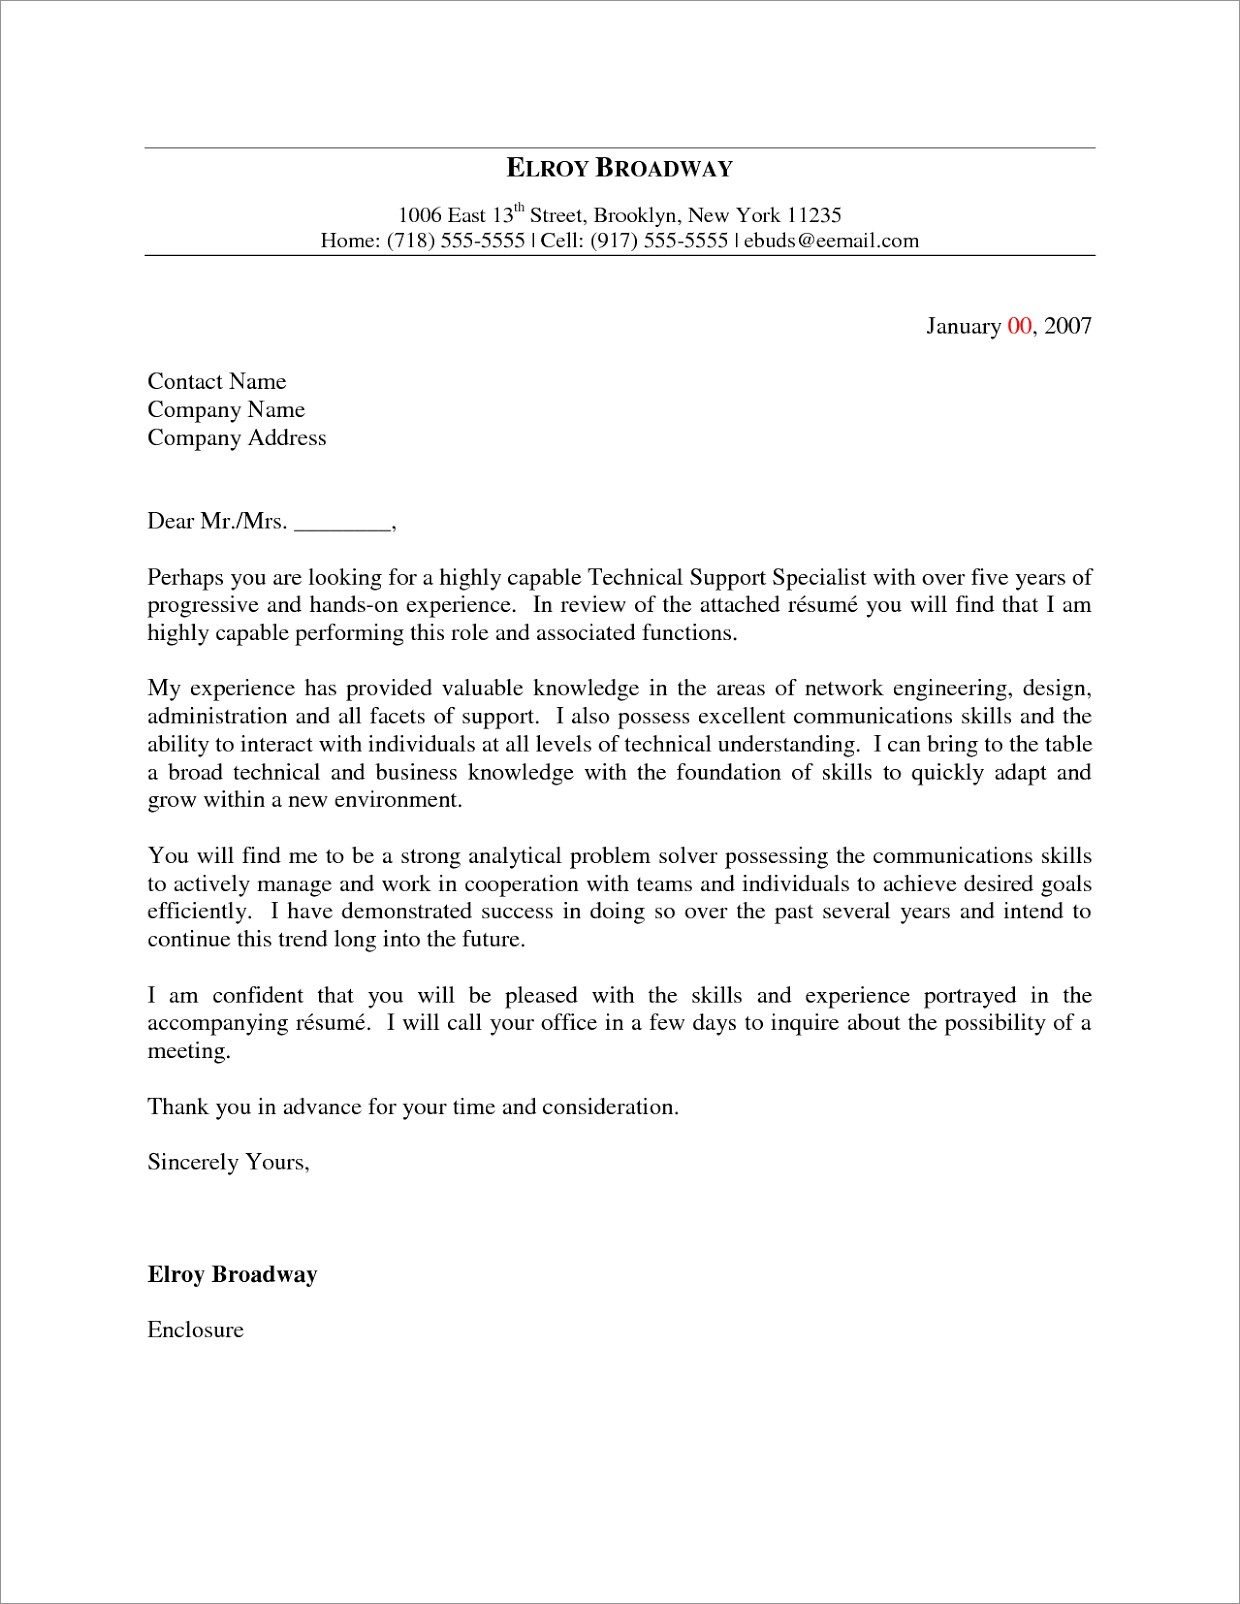 Child Protection Worker Cover Letter Sample